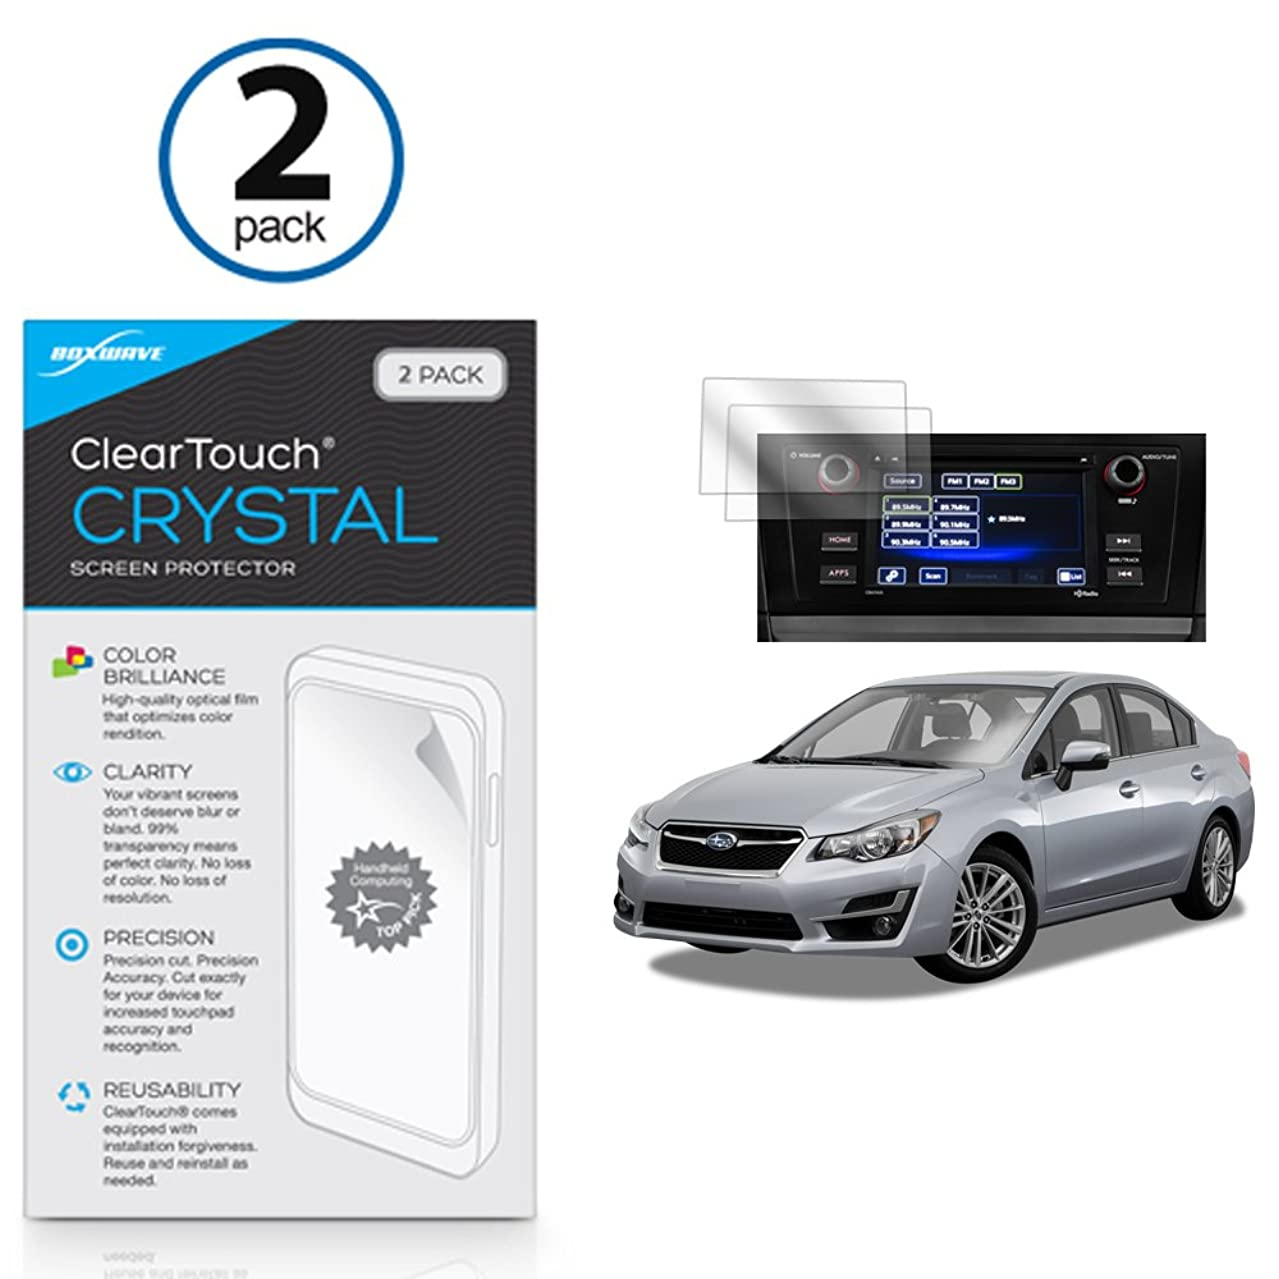 Subaru 2016 Impreza (6.2 in) Screen Protector, BoxWave [ClearTouch Crystal (2-Pack)] HD Film Skin - Shields from Scratches for Subaru 2016 Impreza (6.2 in)